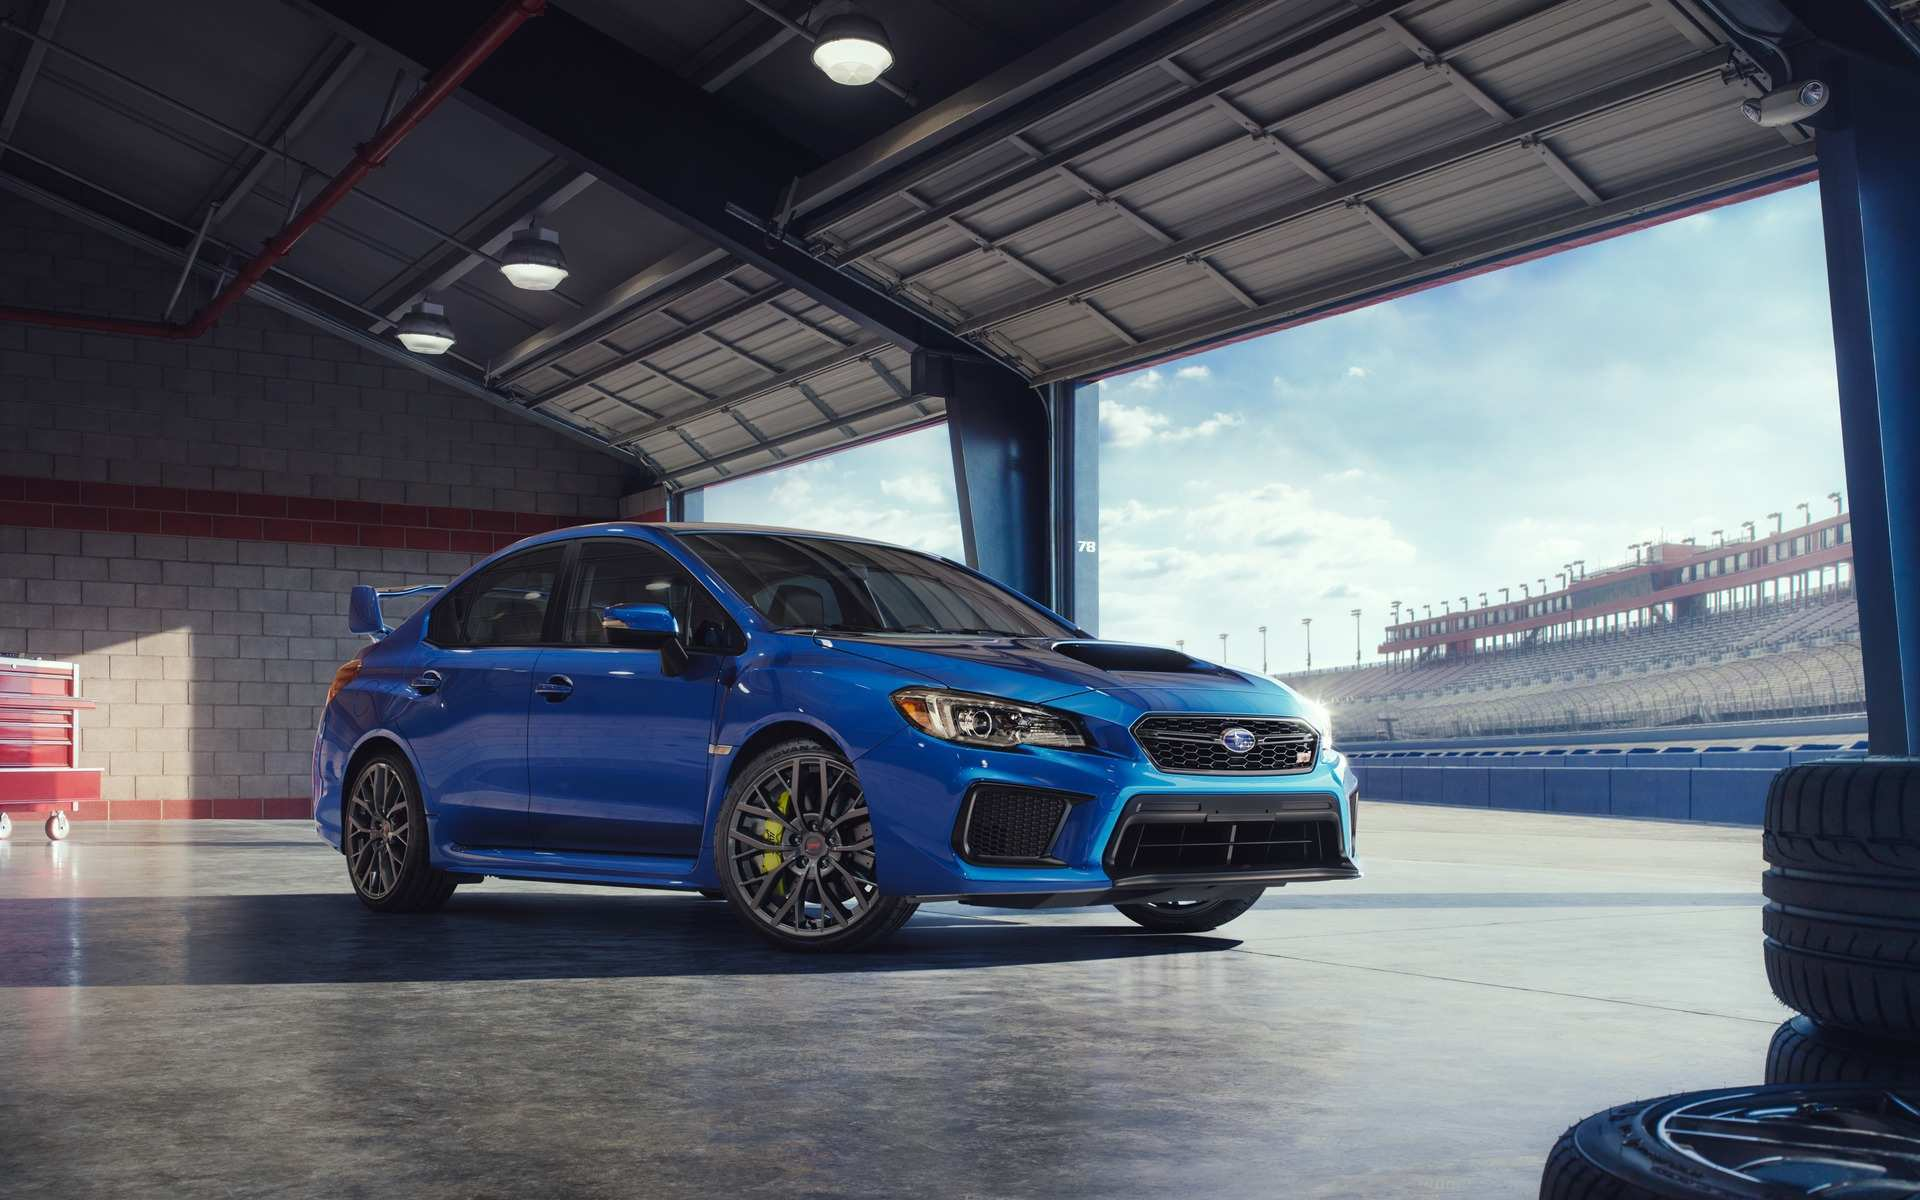 57 Gallery of 2019 Subaru Raiu Research New by 2019 Subaru Raiu